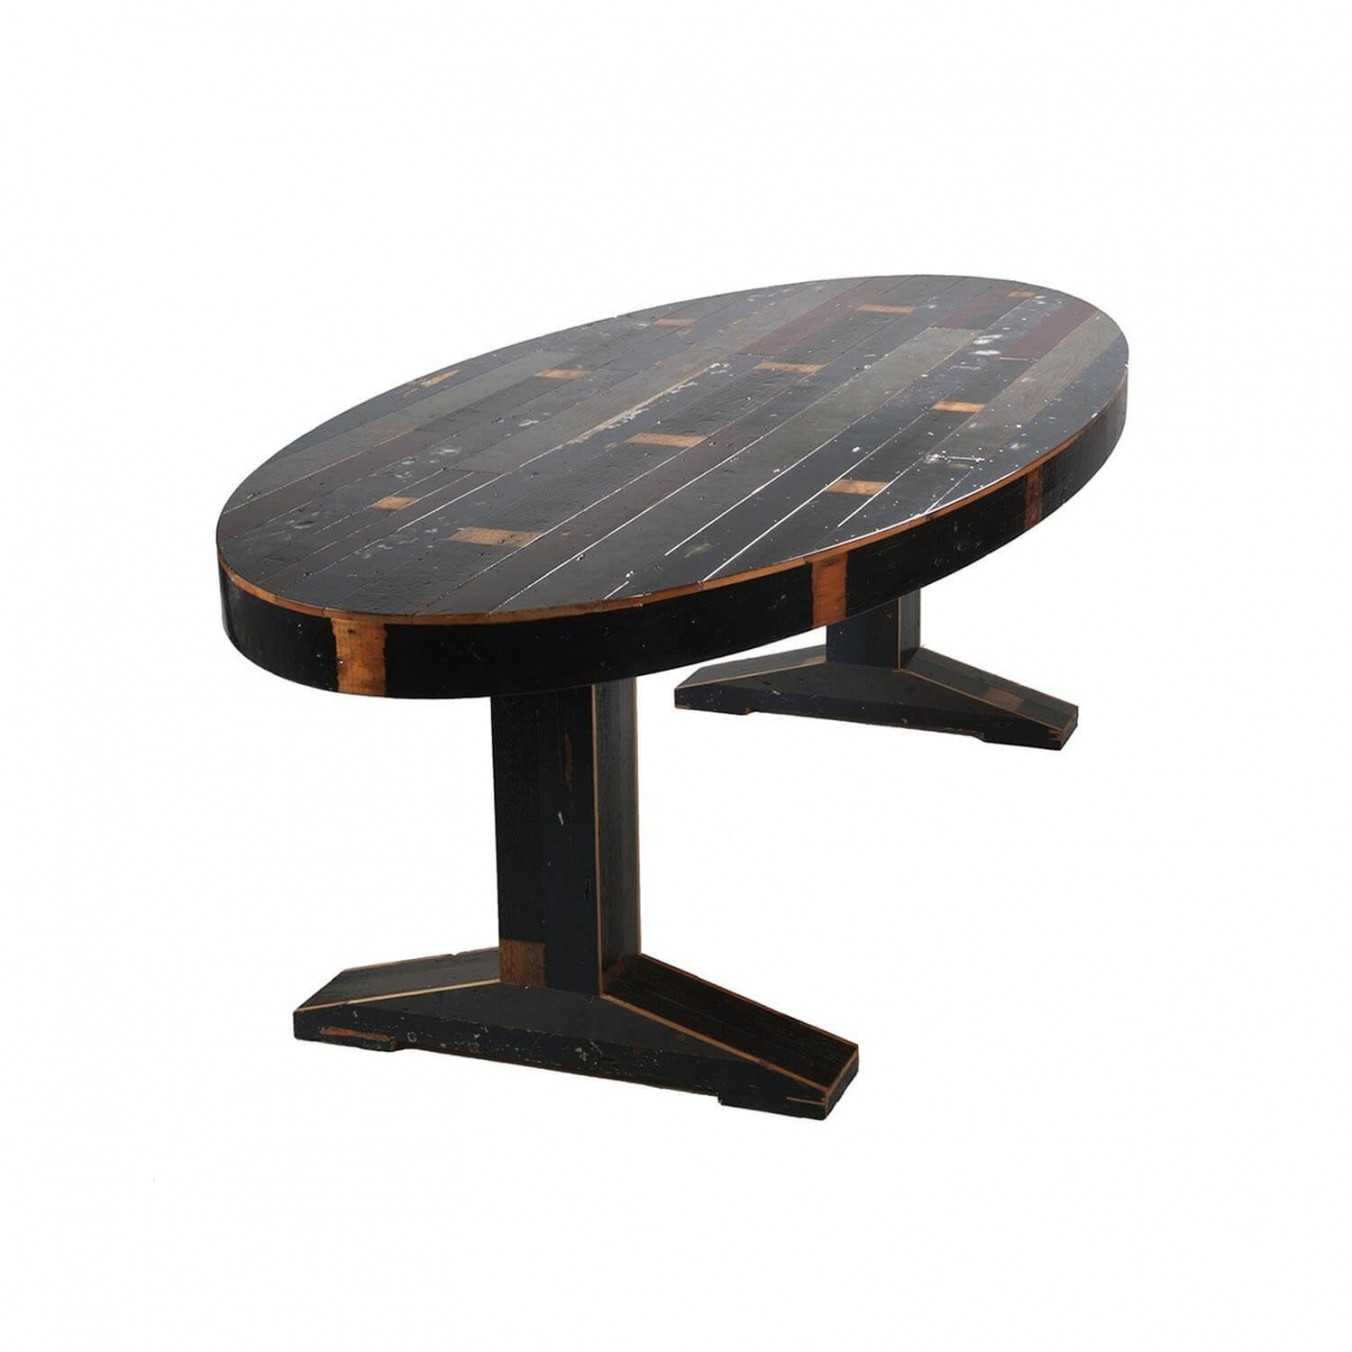 Canteen Table in Scrapwood Oval Fixated